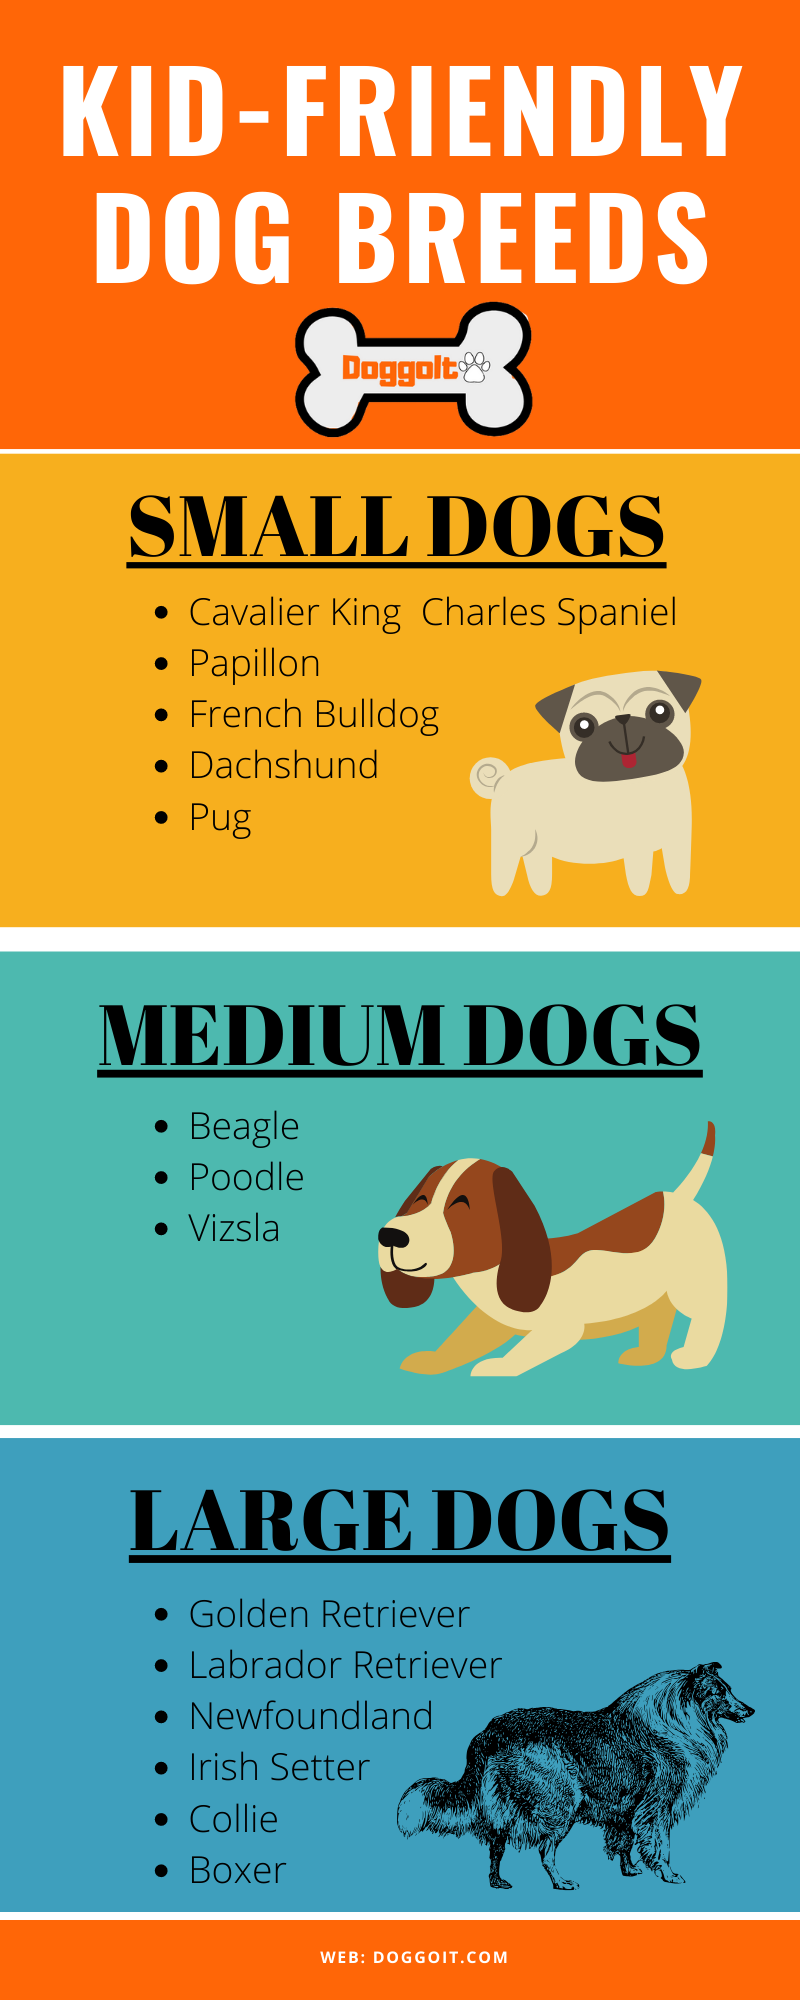 Best kid friendly dog breeds by size